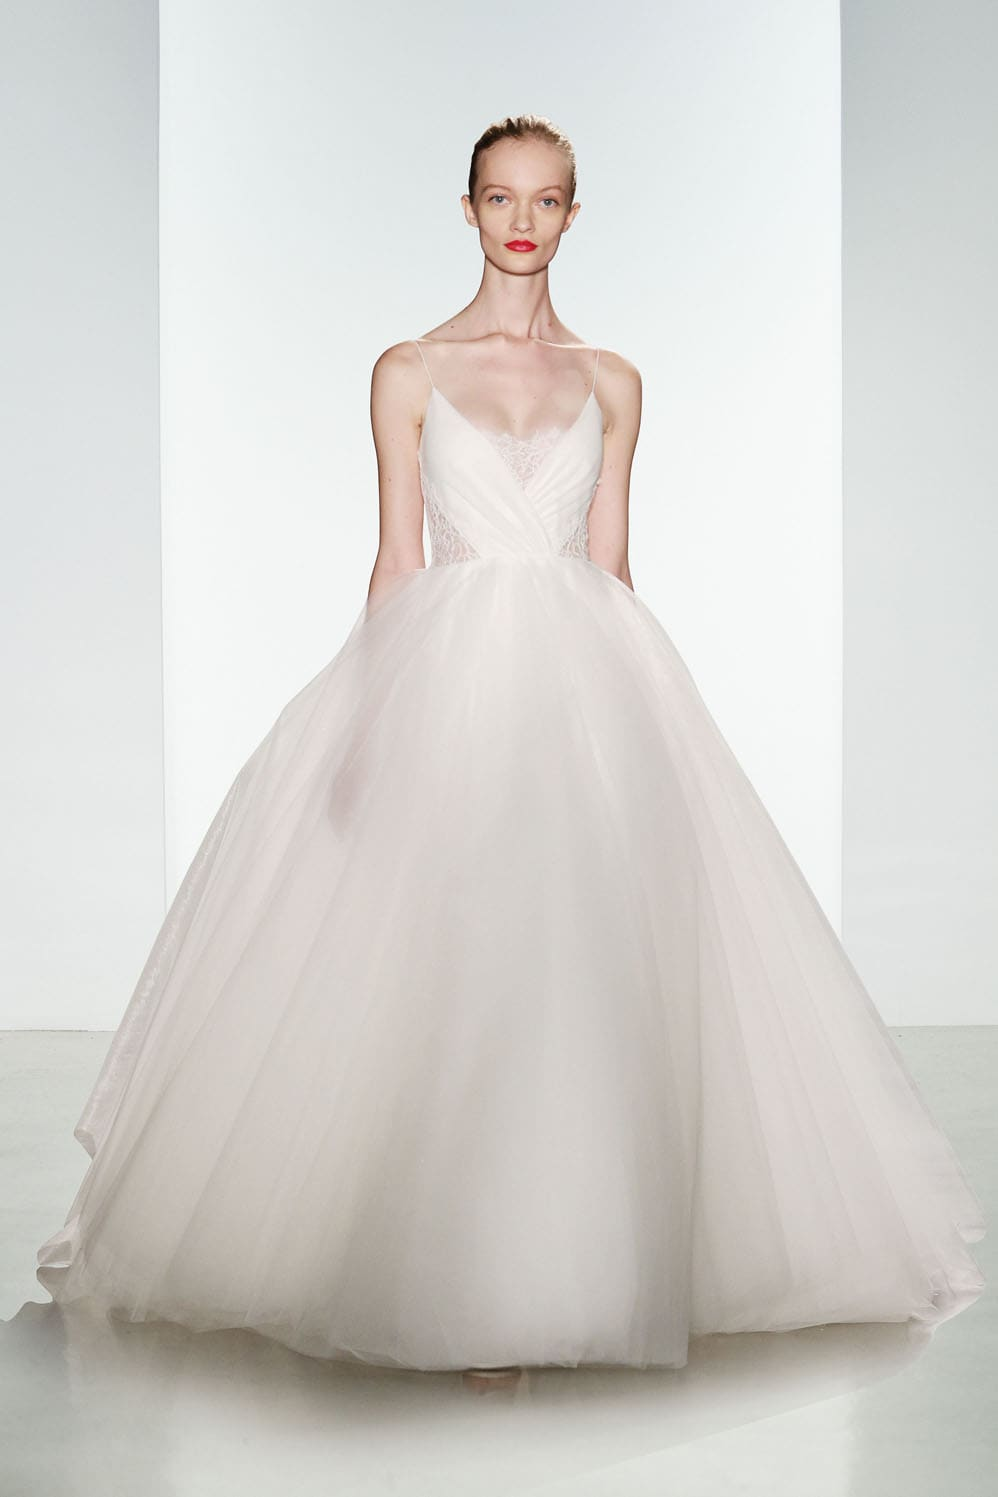 Penny by christos tulle ballgown wedding dress for Image of wedding dresses